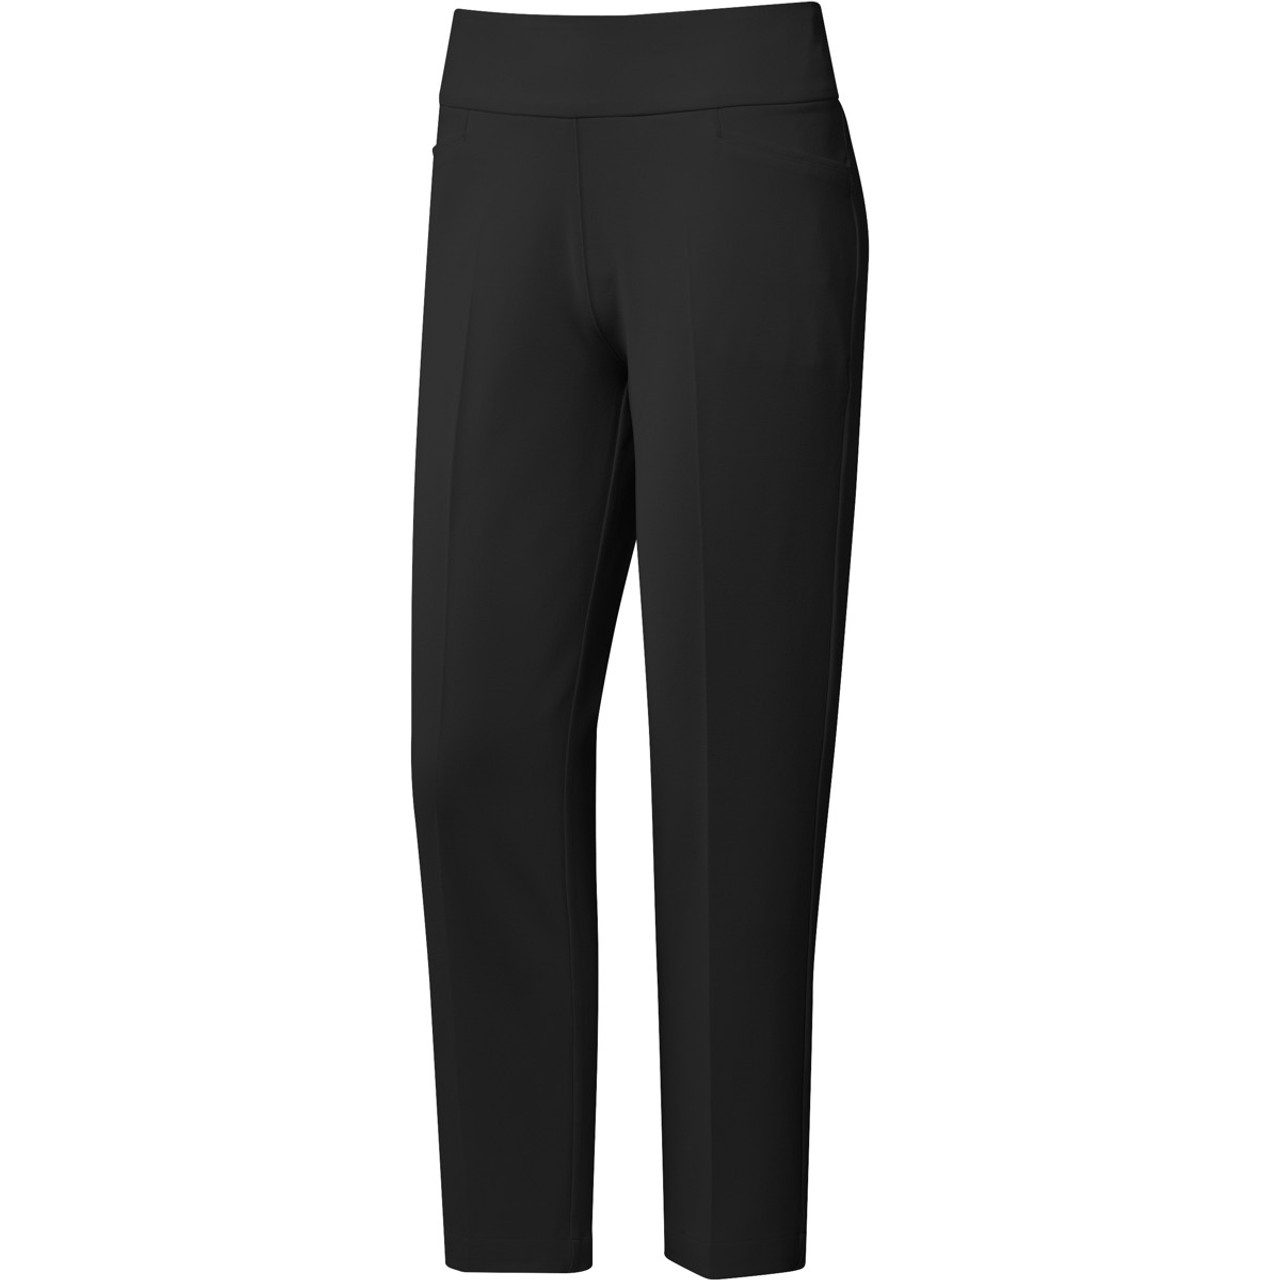 Adidas Womens Ultimate 365 Adistar Cropped Pants - Black